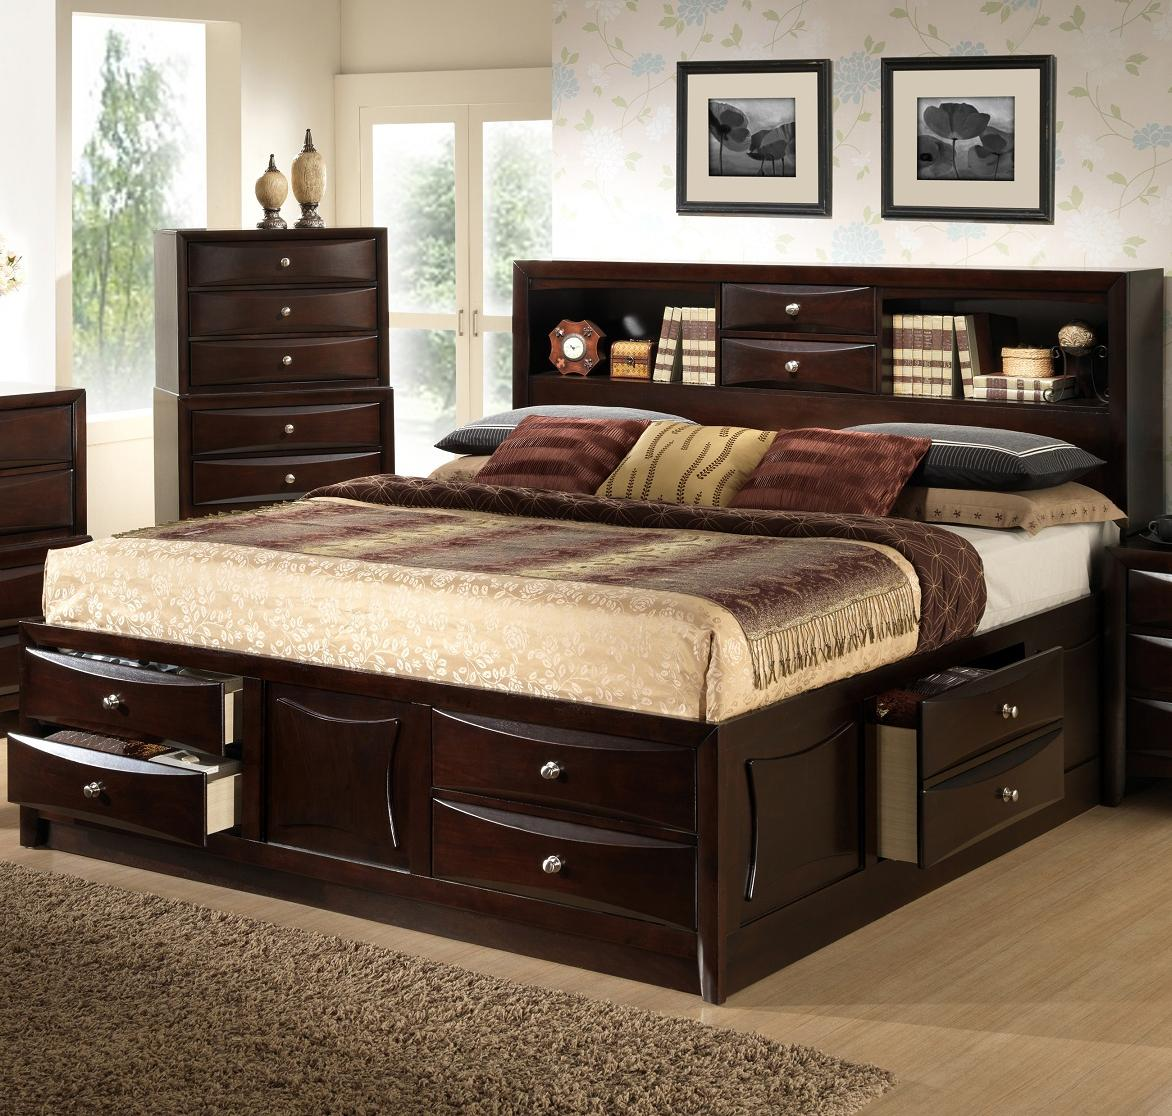 Queen Bedroom Furniture Sets Under